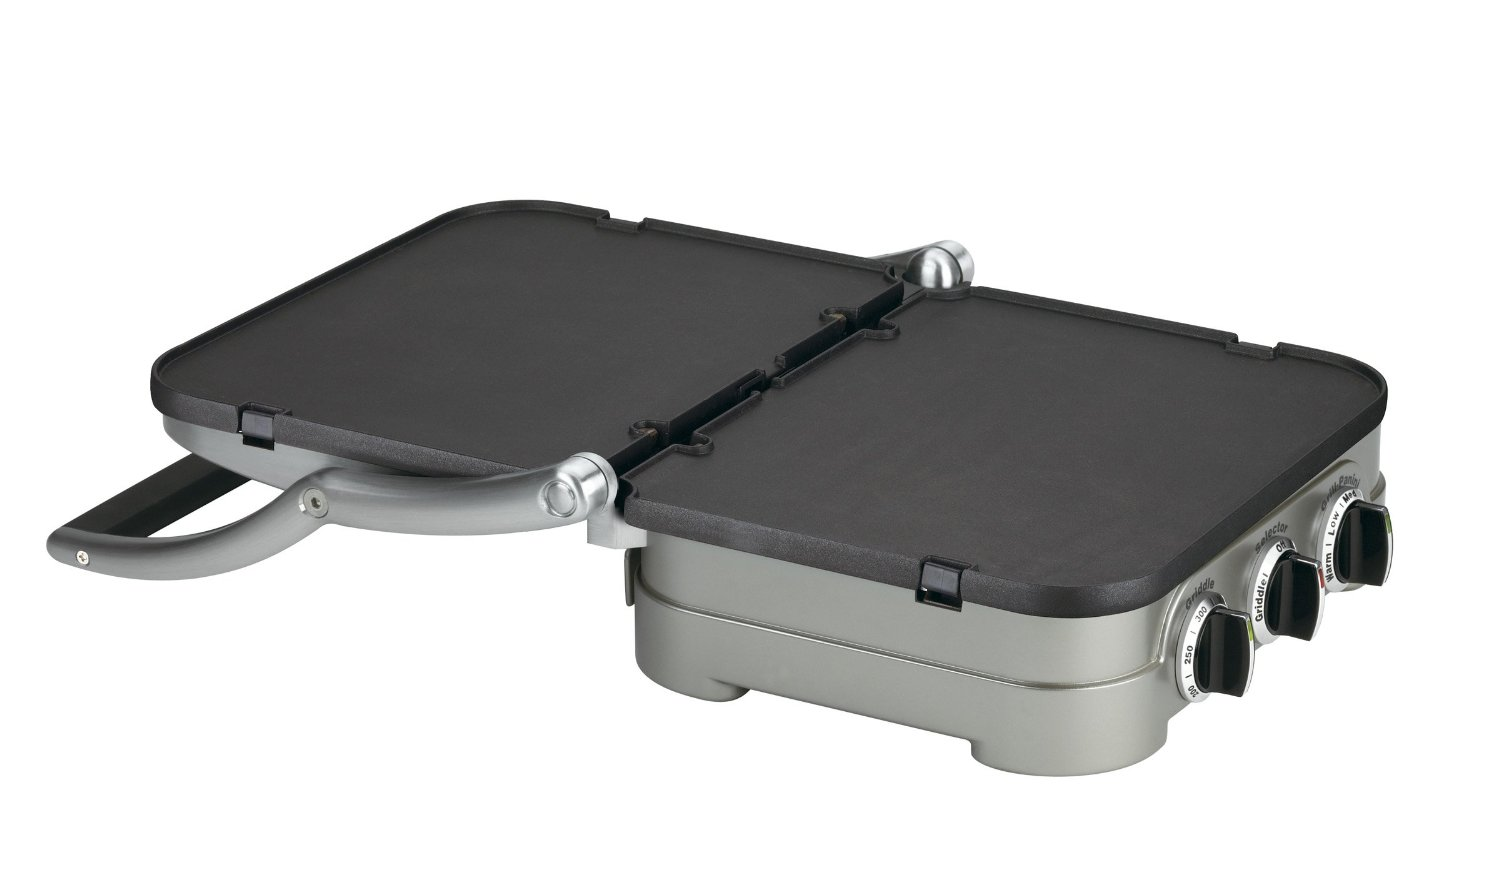 panini grill & griddle